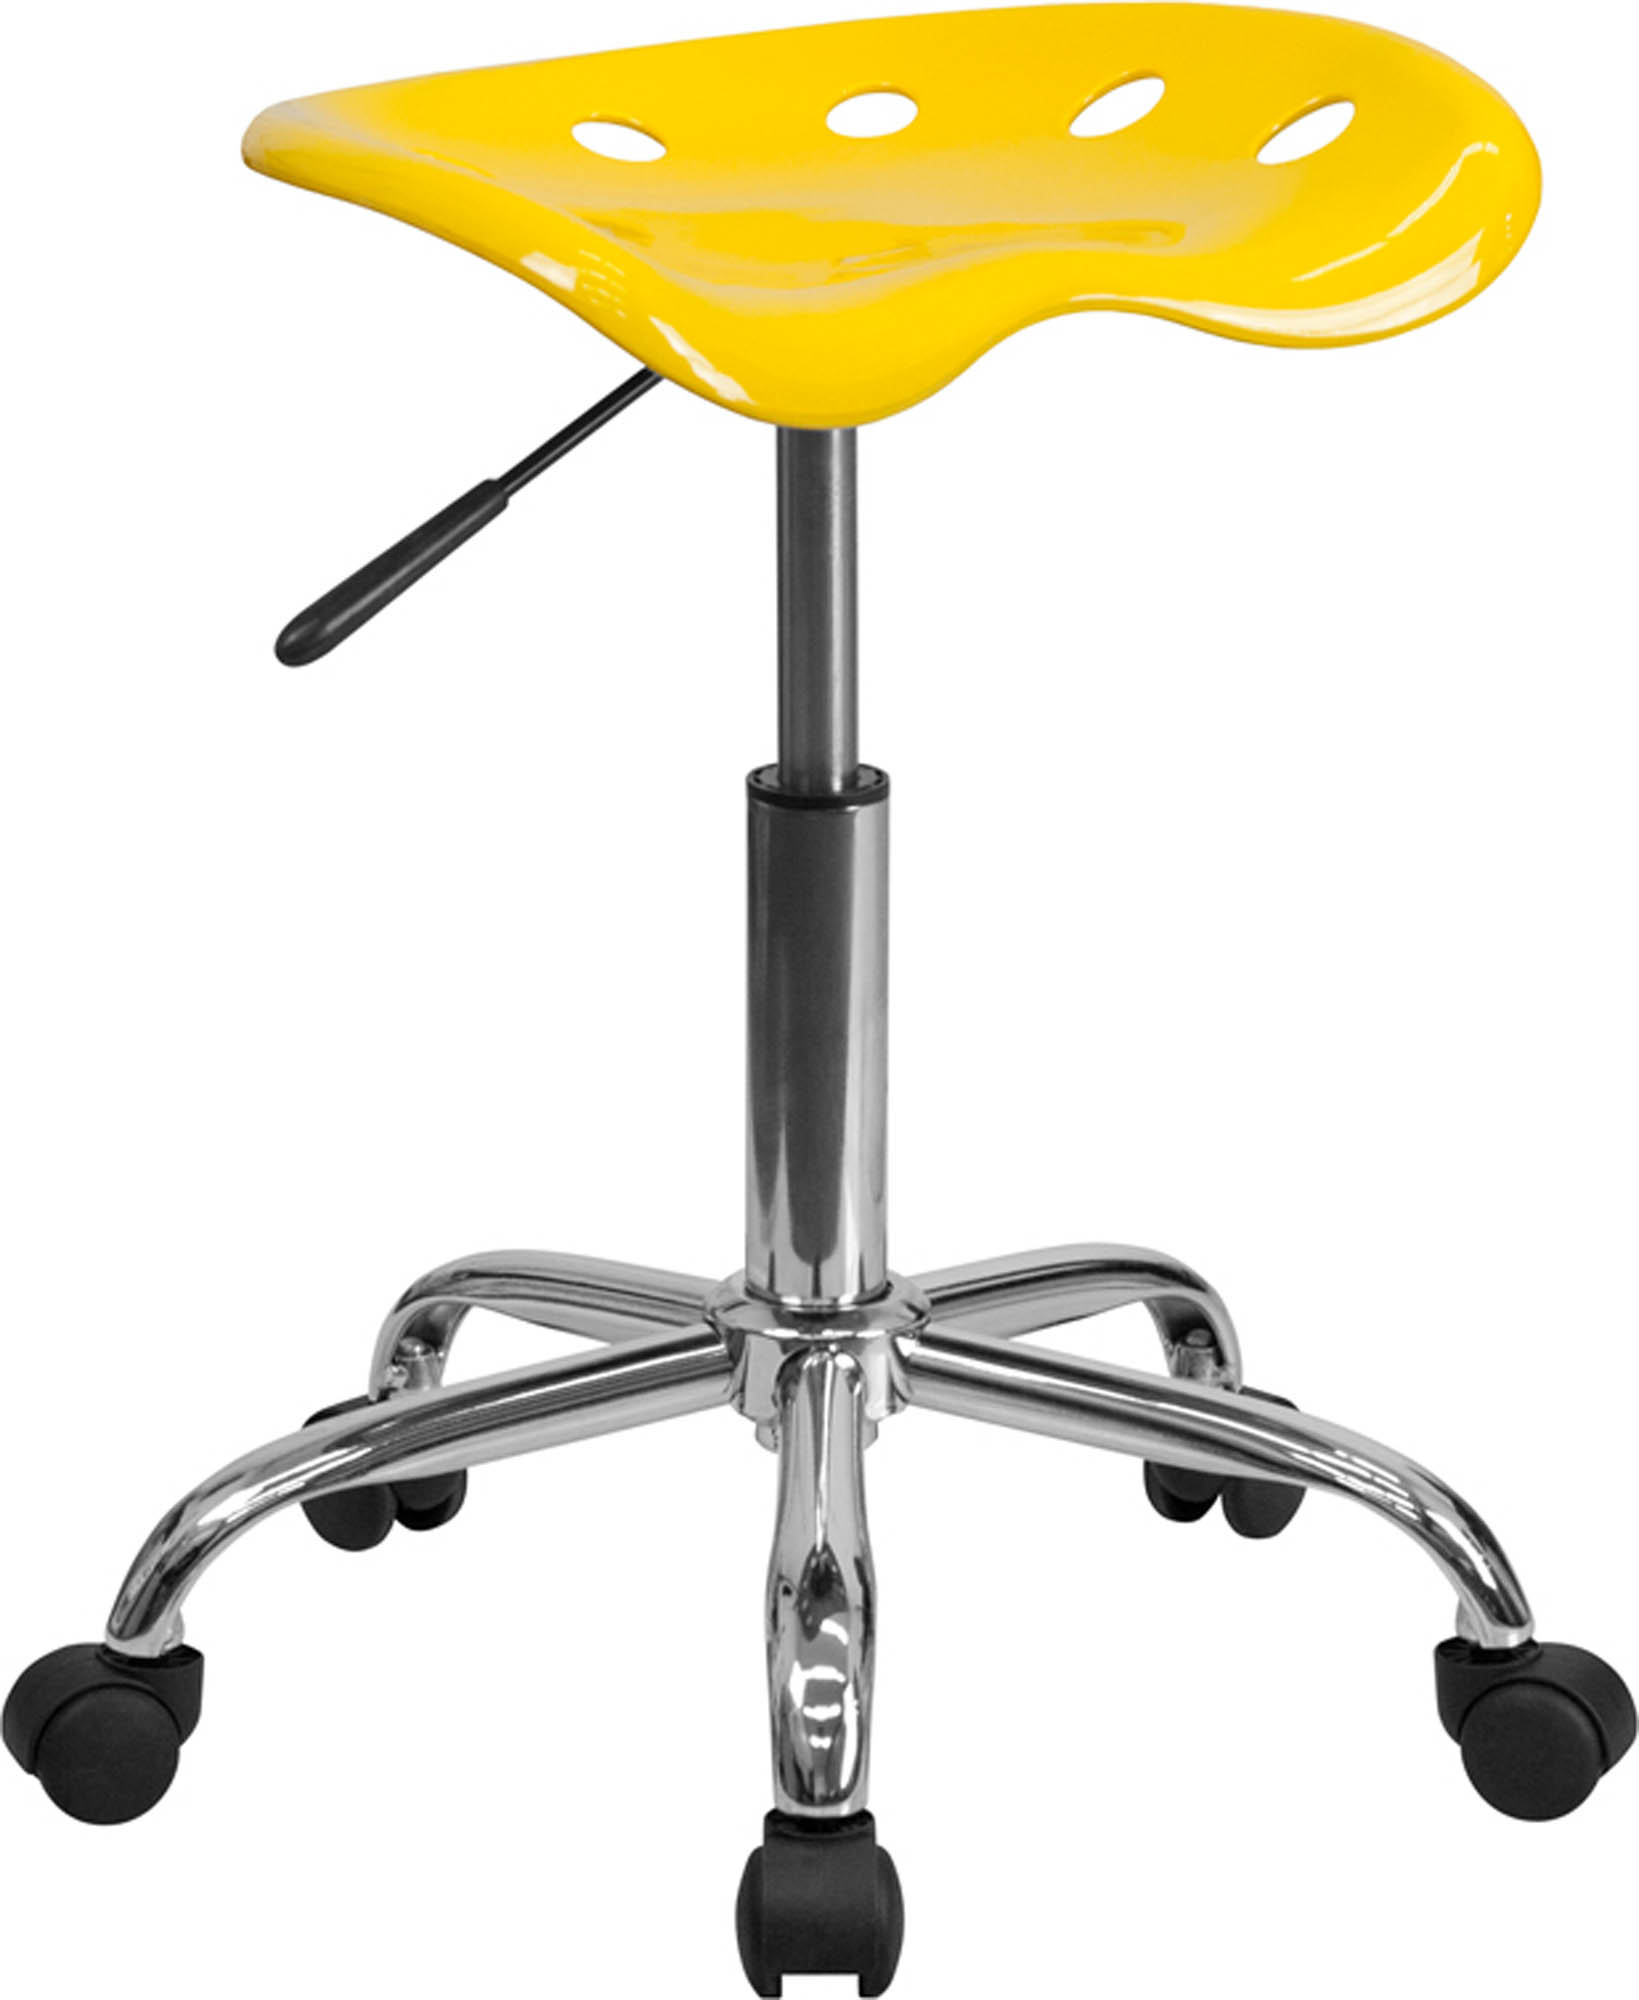 Offex LF-214A-YELLOW-GG Vibrant Orange-Yellow Tractor Seat and Chrome Stool